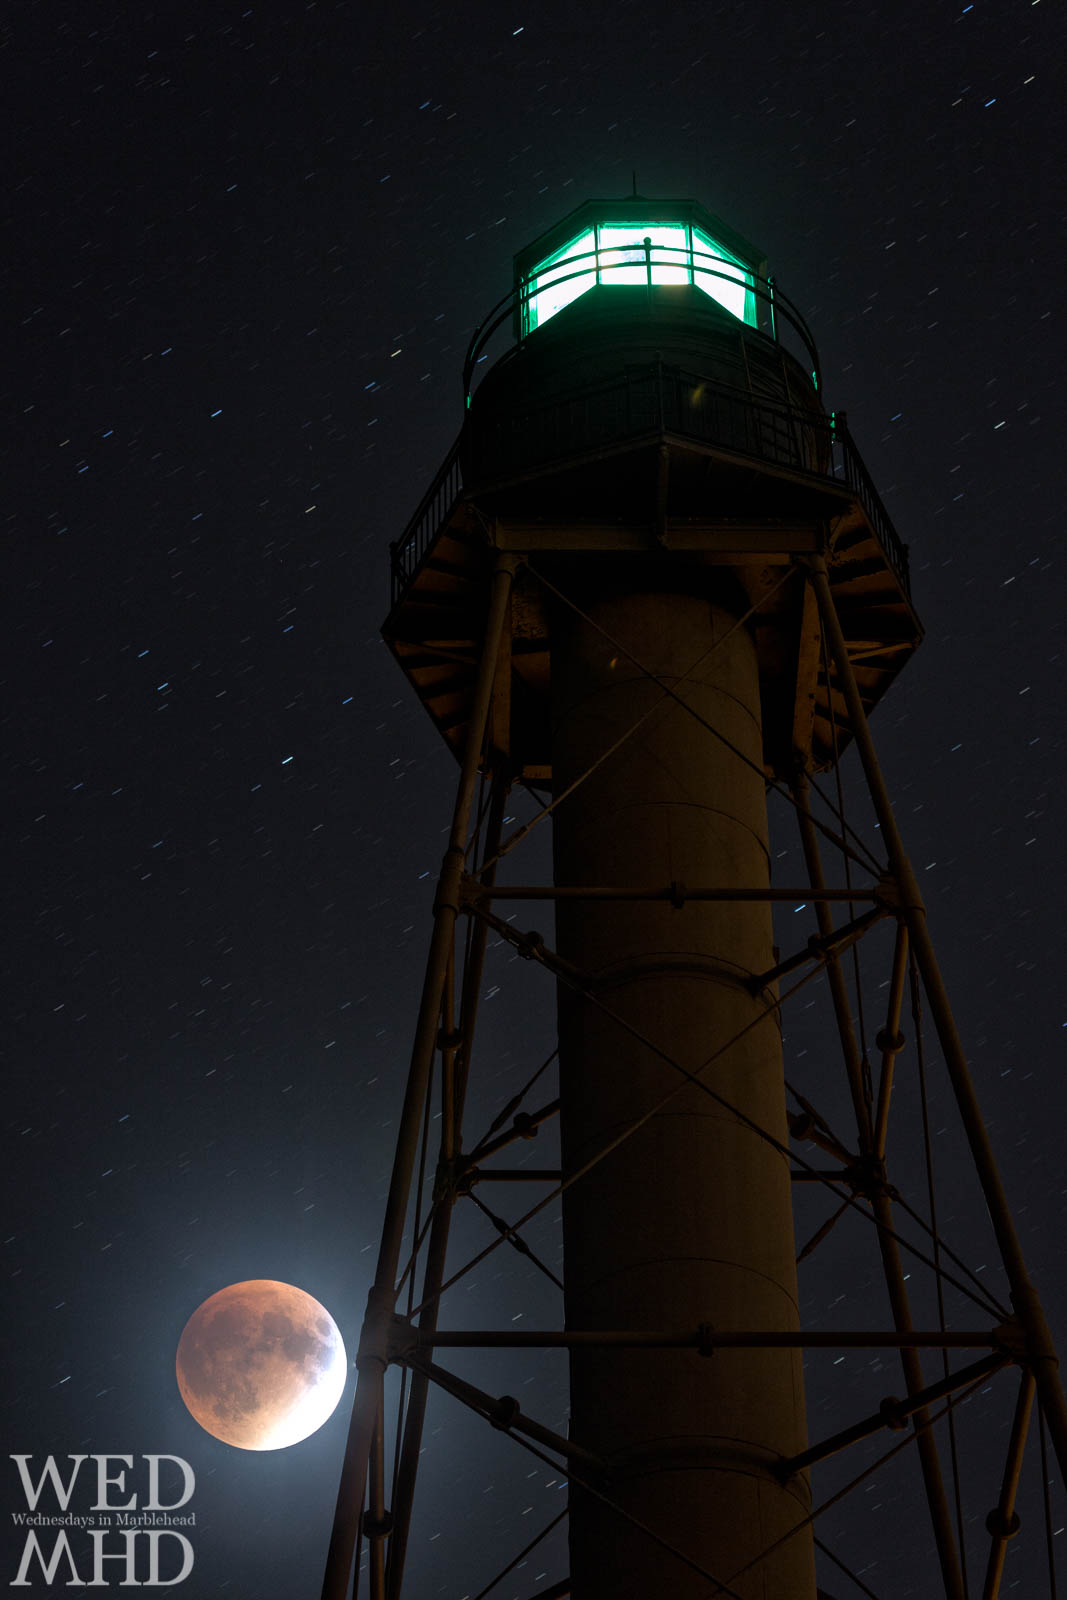 A lunar eclipse takes place in the night sky behind Marblehead Light in September 2015